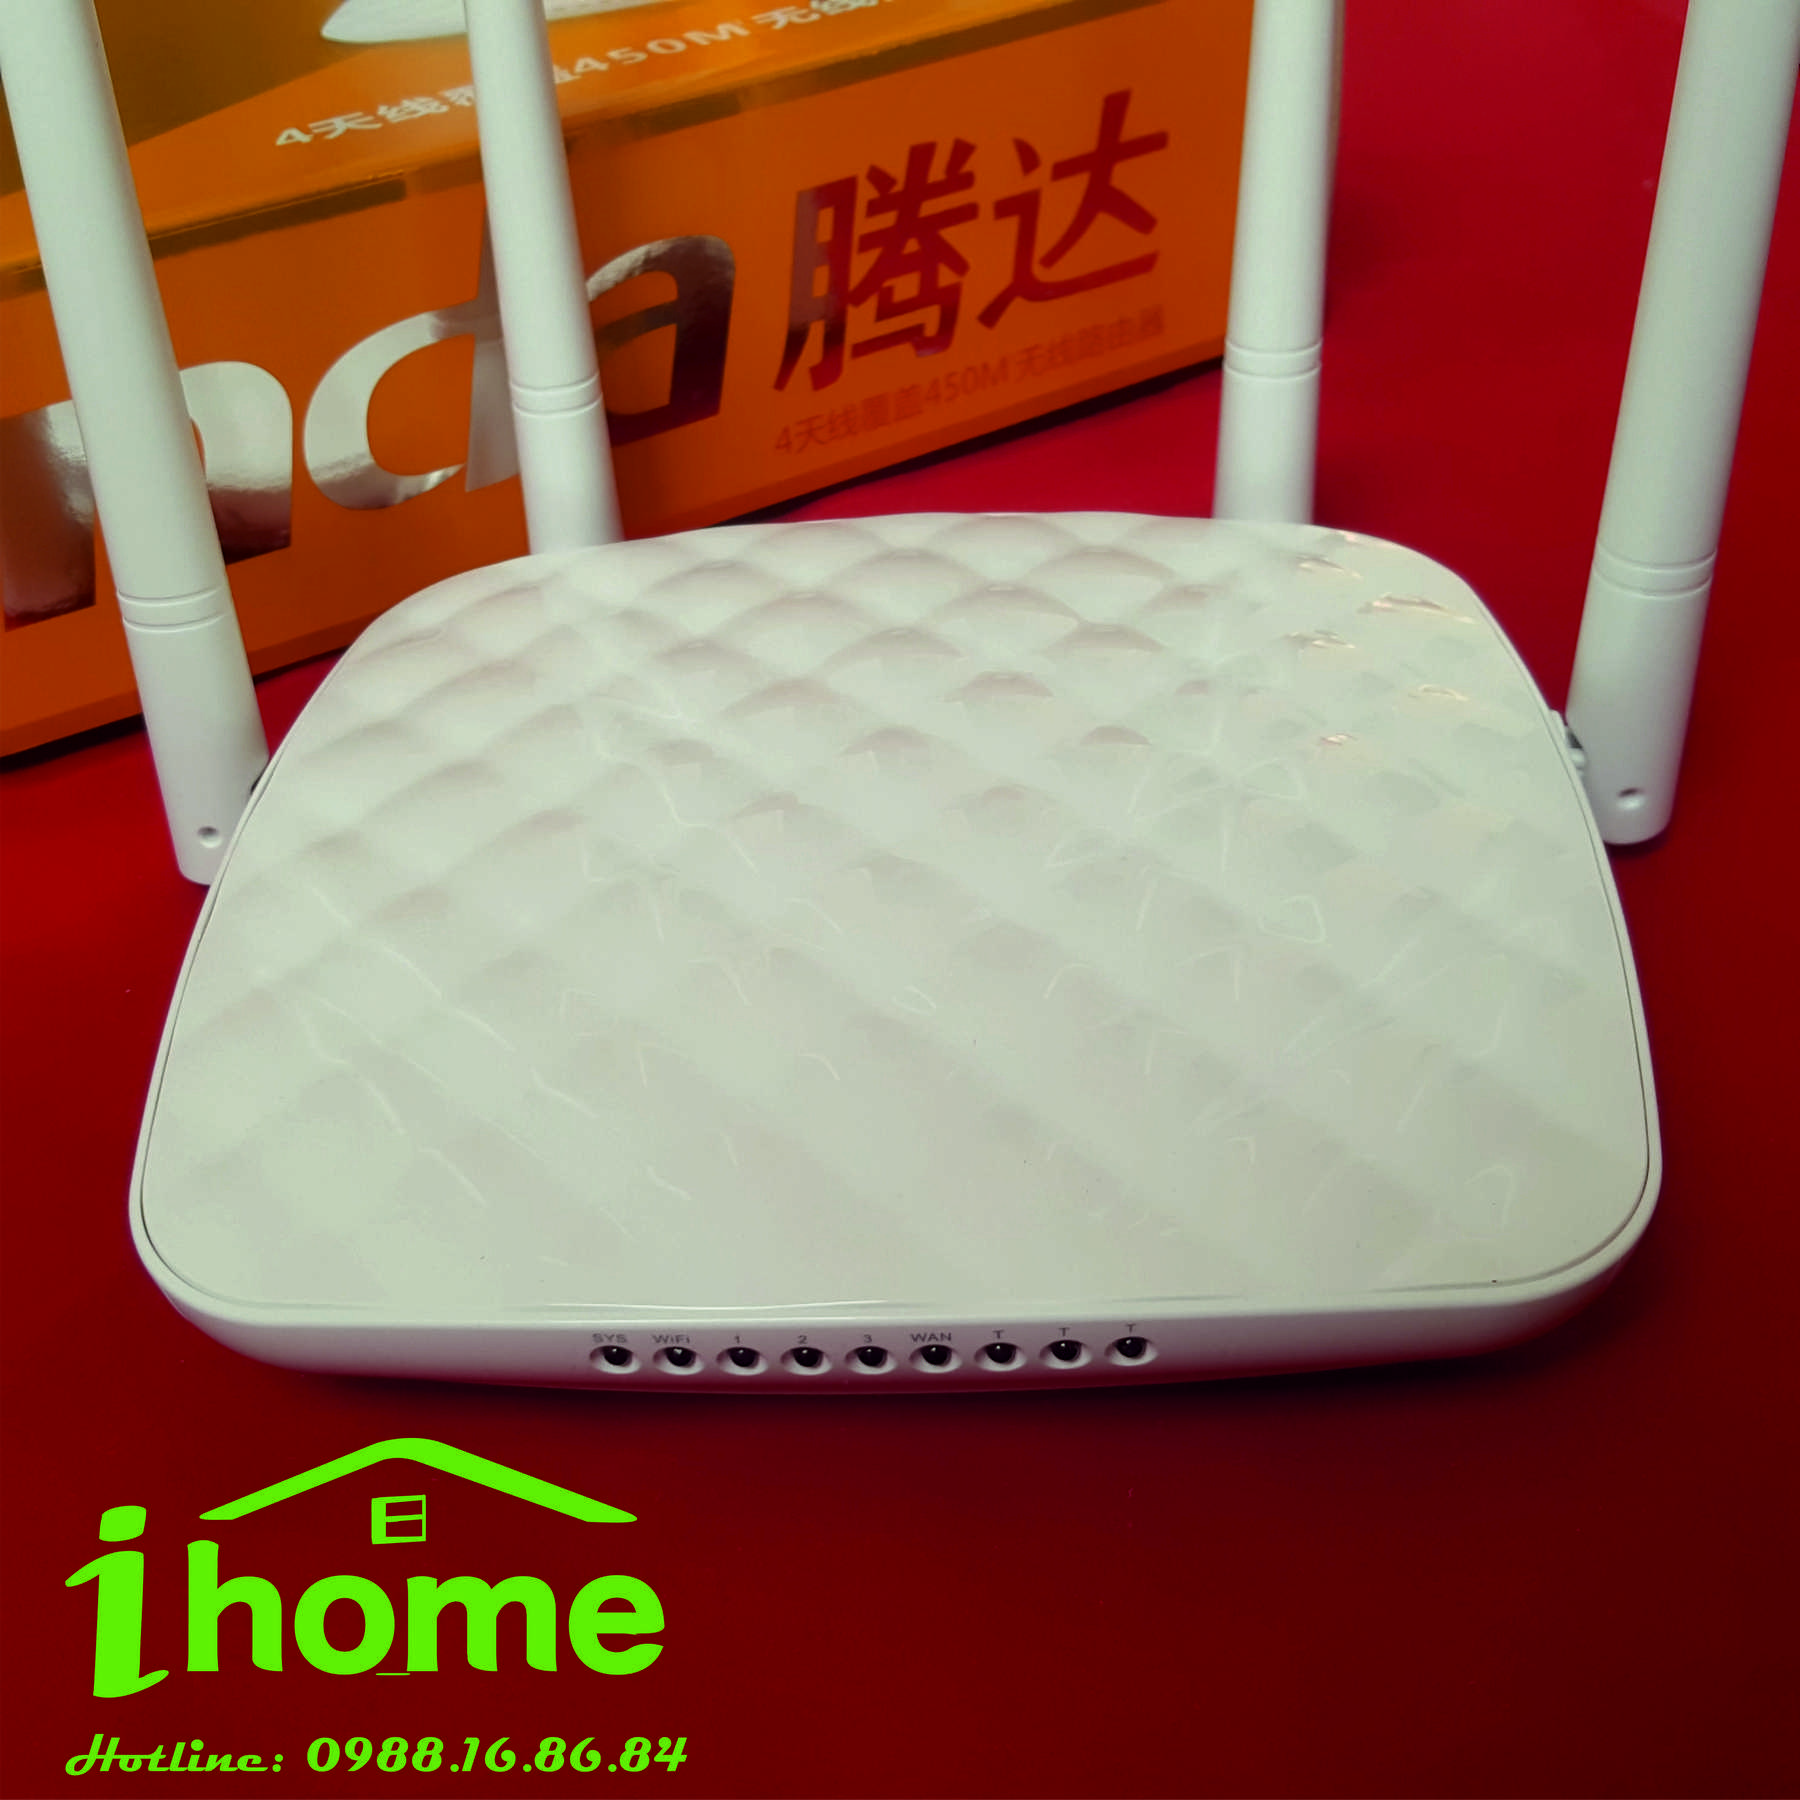 bo-phat-wifi-tenda-fh456-4-anten-toc-do-300mbps-co-chuc-nang-repeater-xuyen-tuon